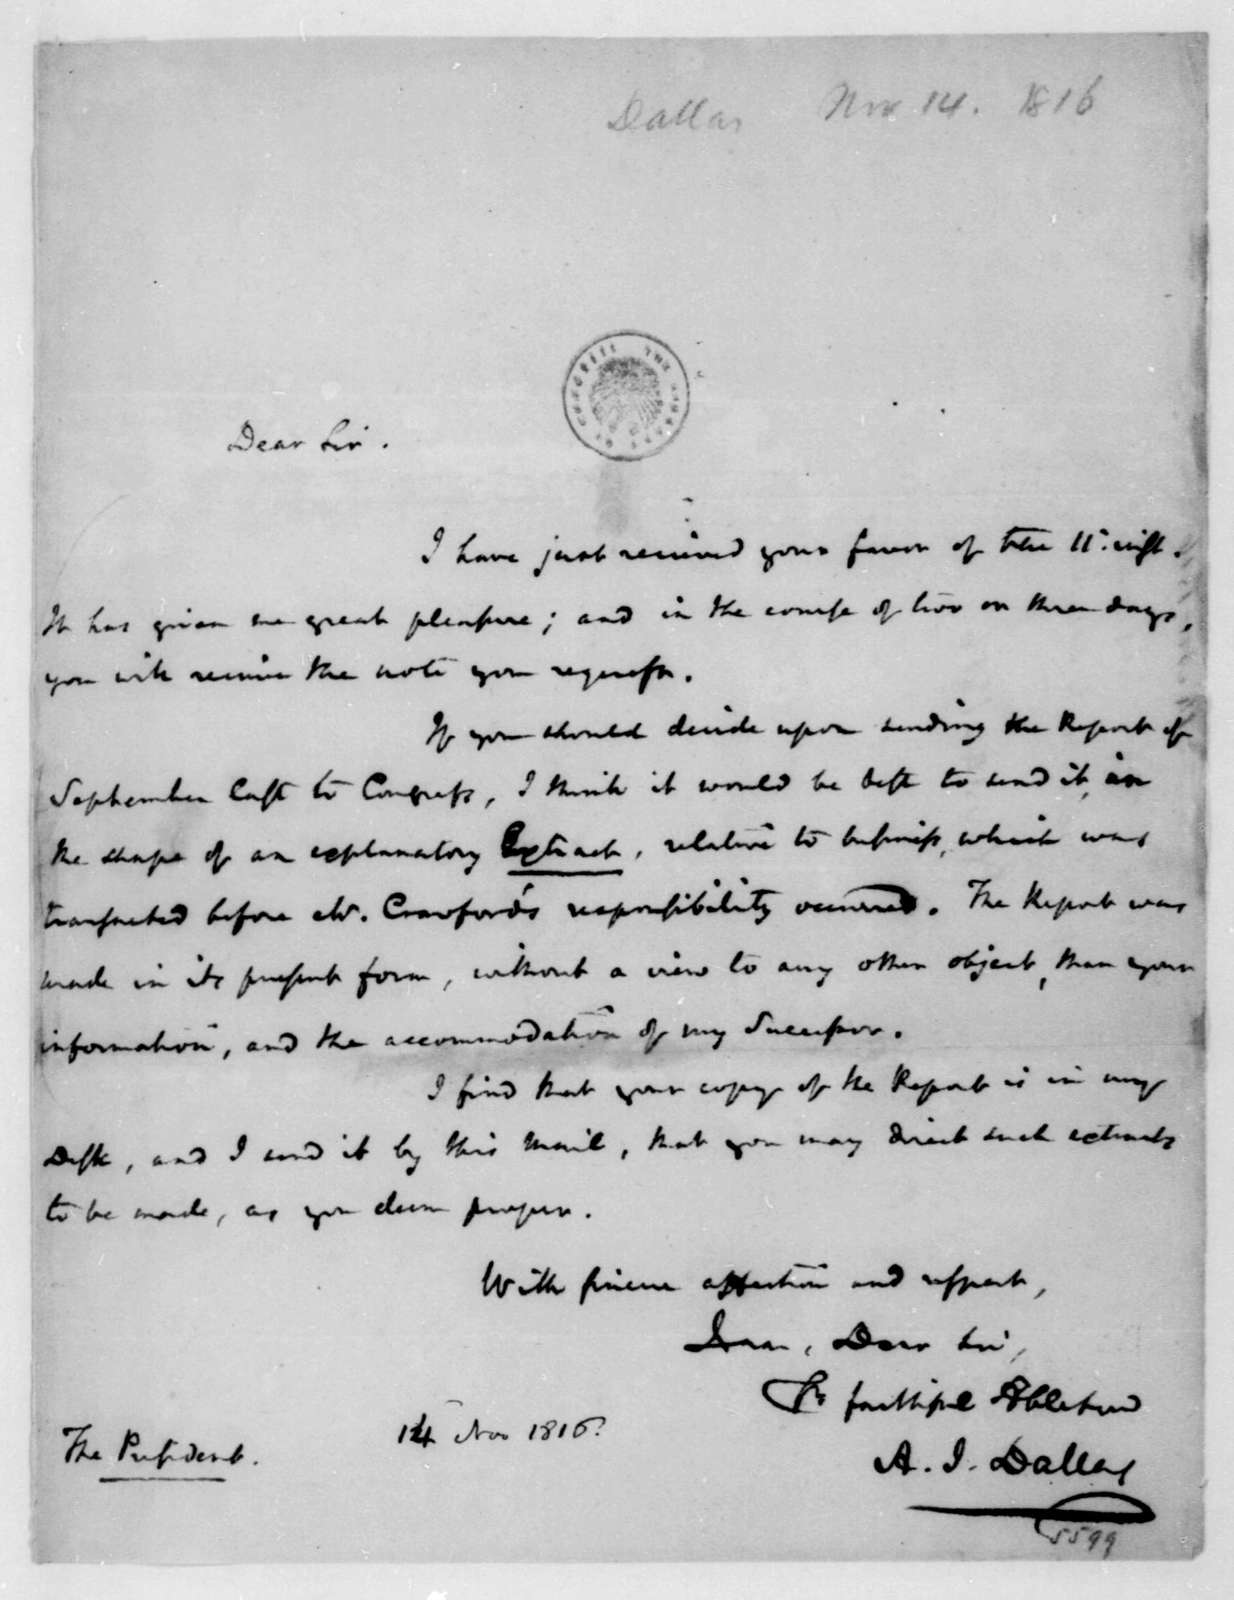 Alexander J. Dallas to James Madison, November 14, 1816.